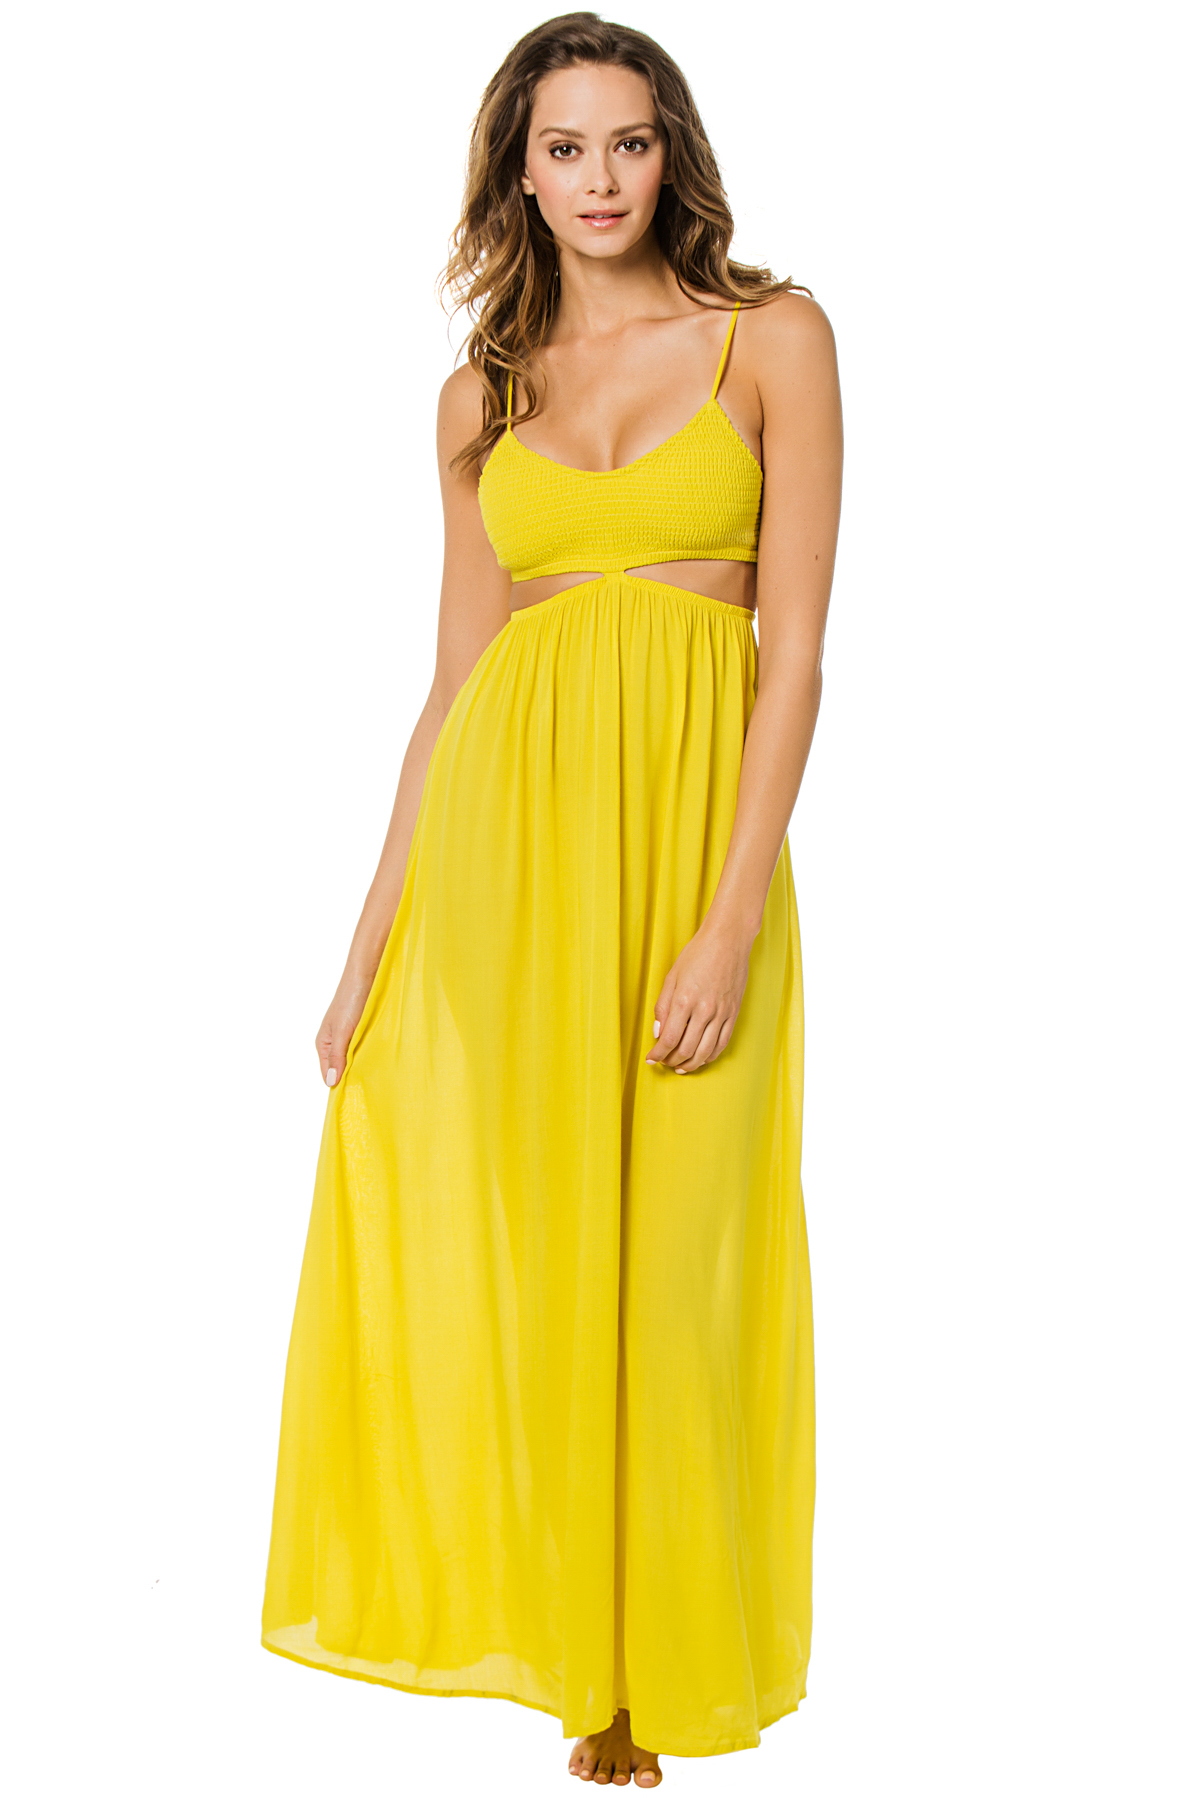 Smocked Neon Cutout Maxi Dress - Citrus 1